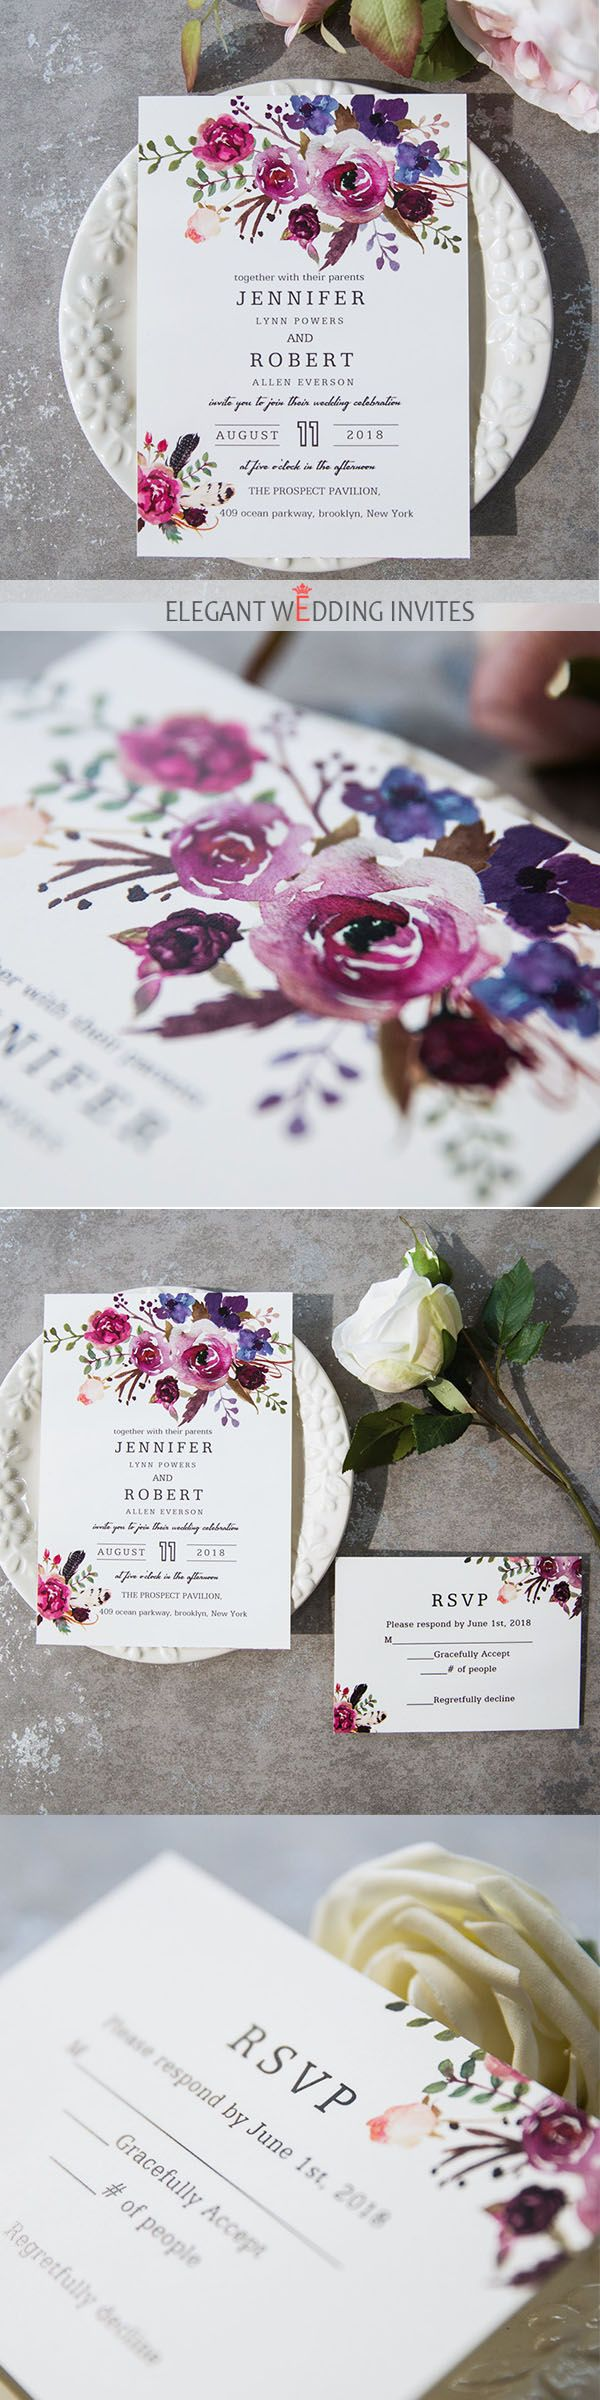 vintage country garden wedding invitations%0A as low as       spring magenta shades of purple wedding invitations  weddinginvitations ElegantWeddingInvites